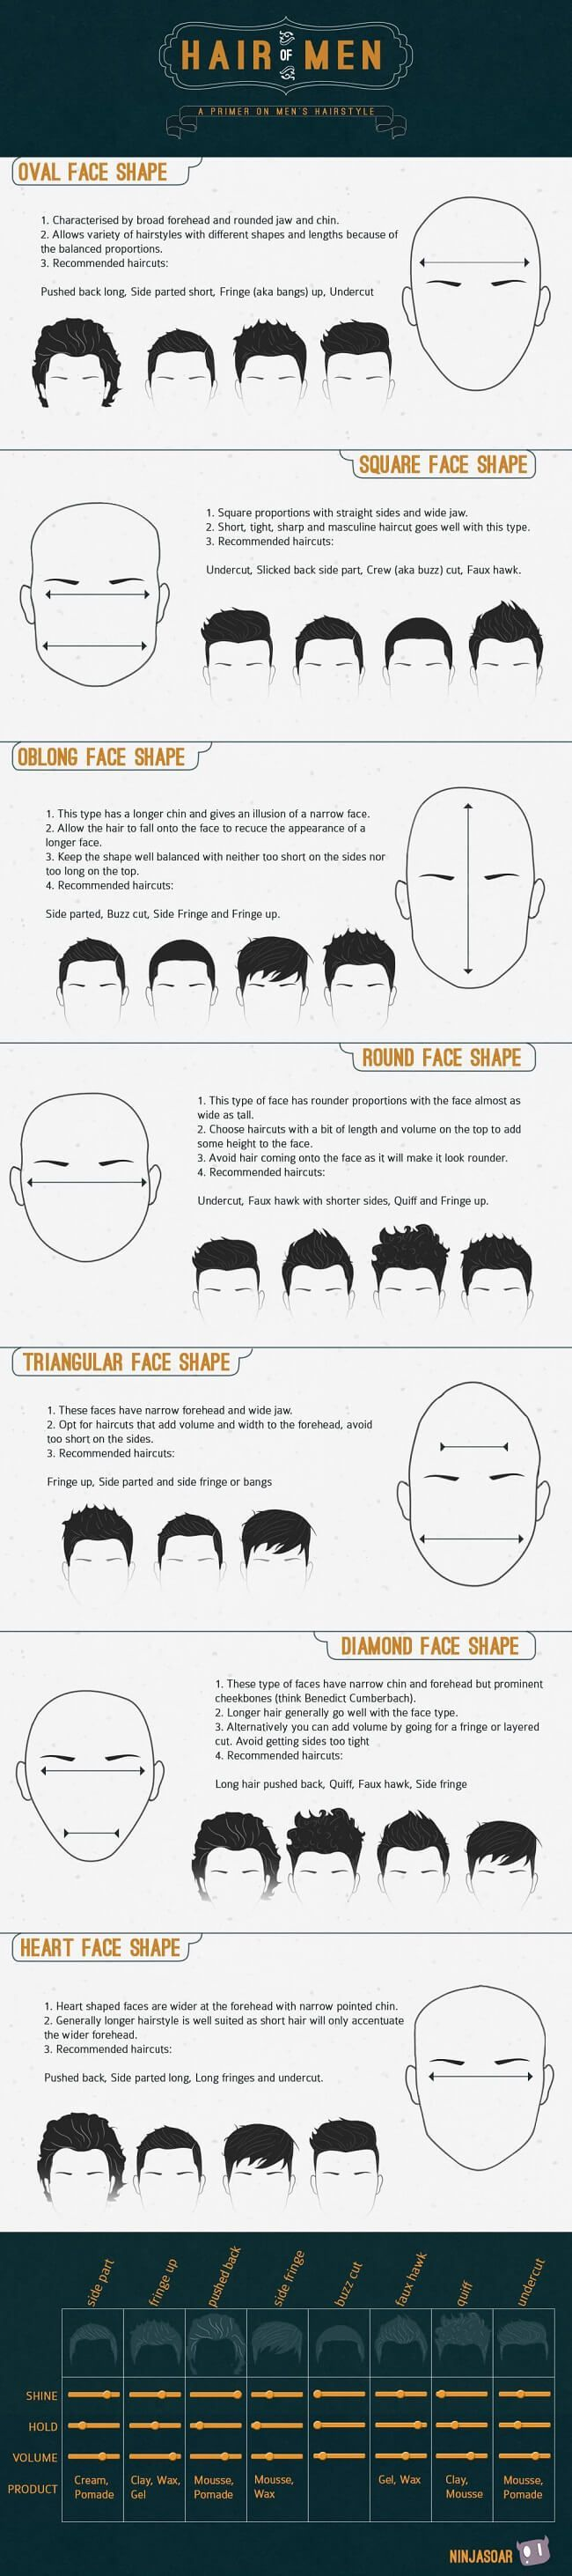 TwitterFacebookWhatsAppGoogle+BufferLinkedIn Published by: Ninjasoar Original source: here TIPS FOR:men's care, men's grooming, men's look, men's style, hairstyle Related Tips... Thin Hair Vs Thick Hair How Protein Softens Hair Gents Pinpoint your Next Hairstyle #menshairstylesthickhair